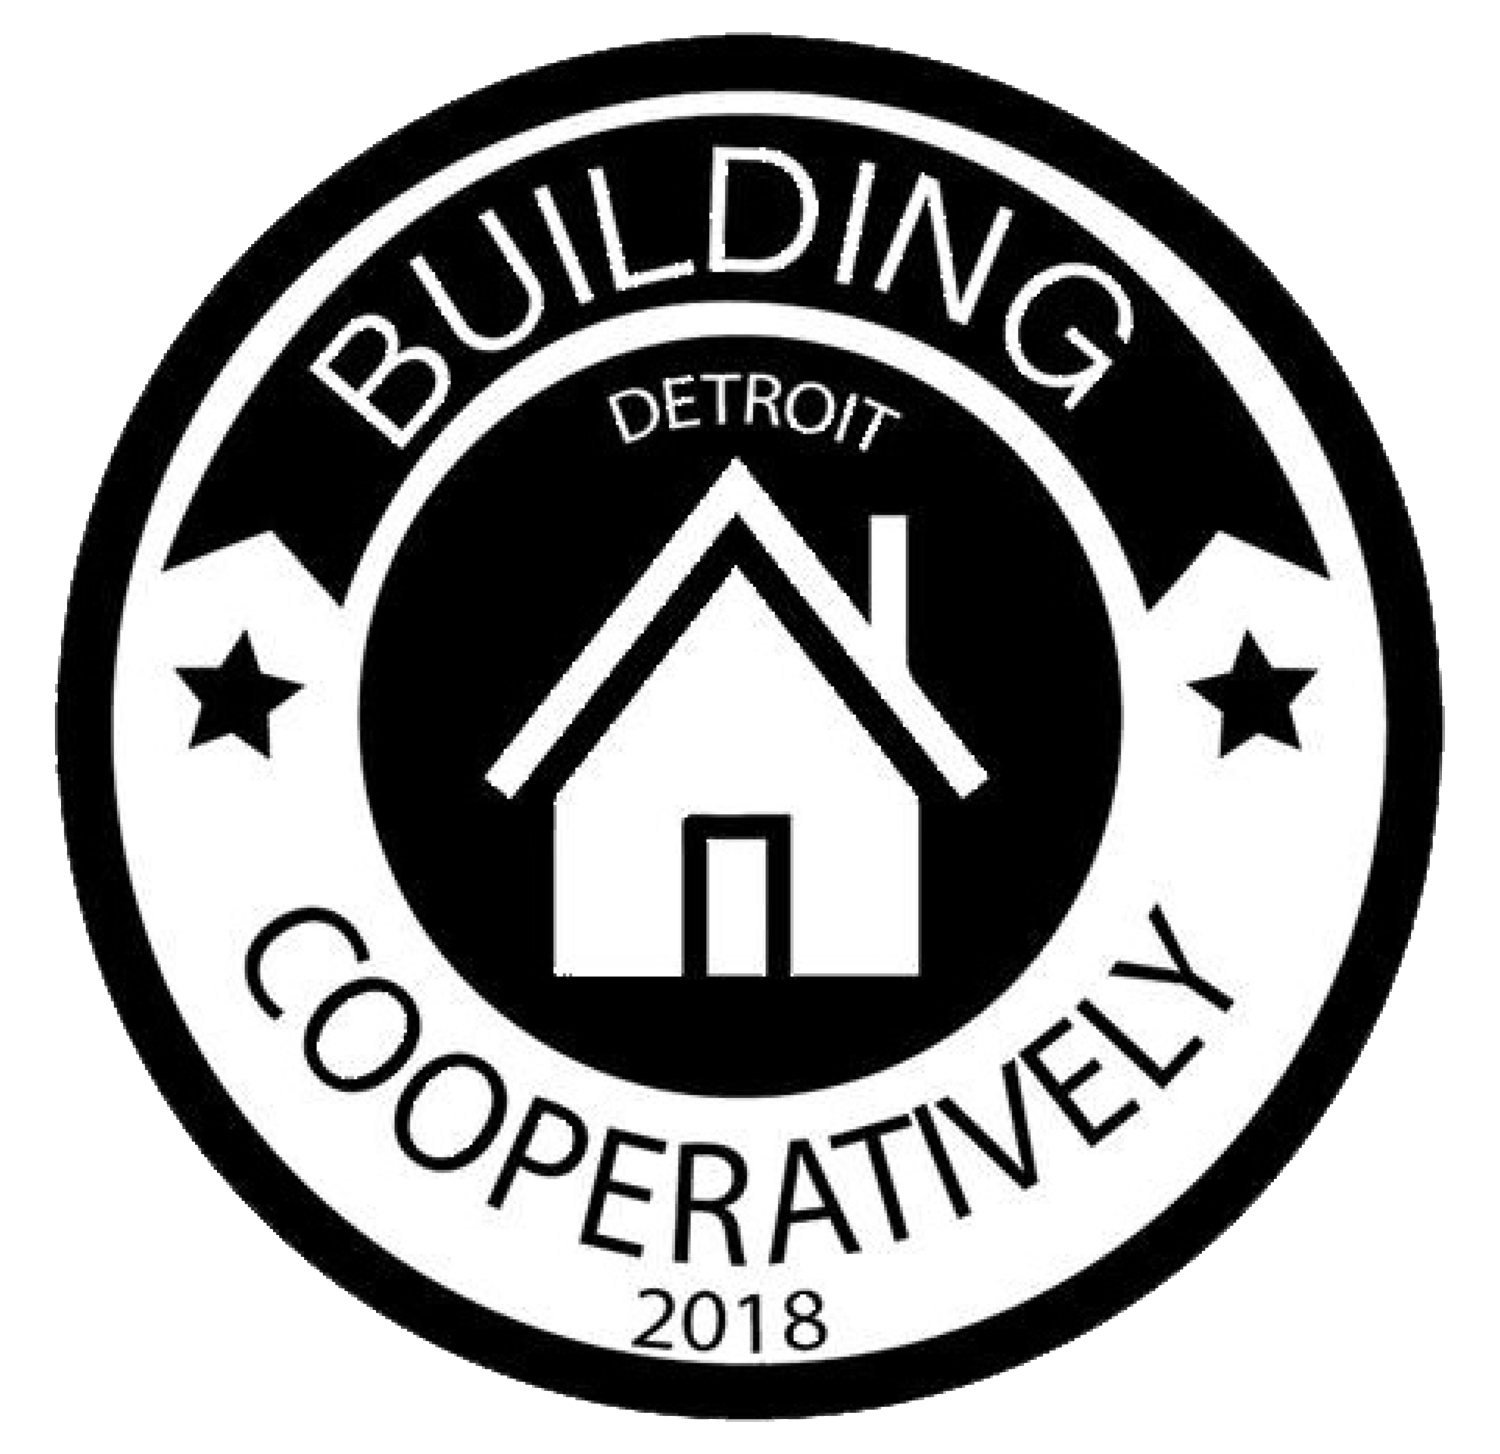 Building Cooperatively